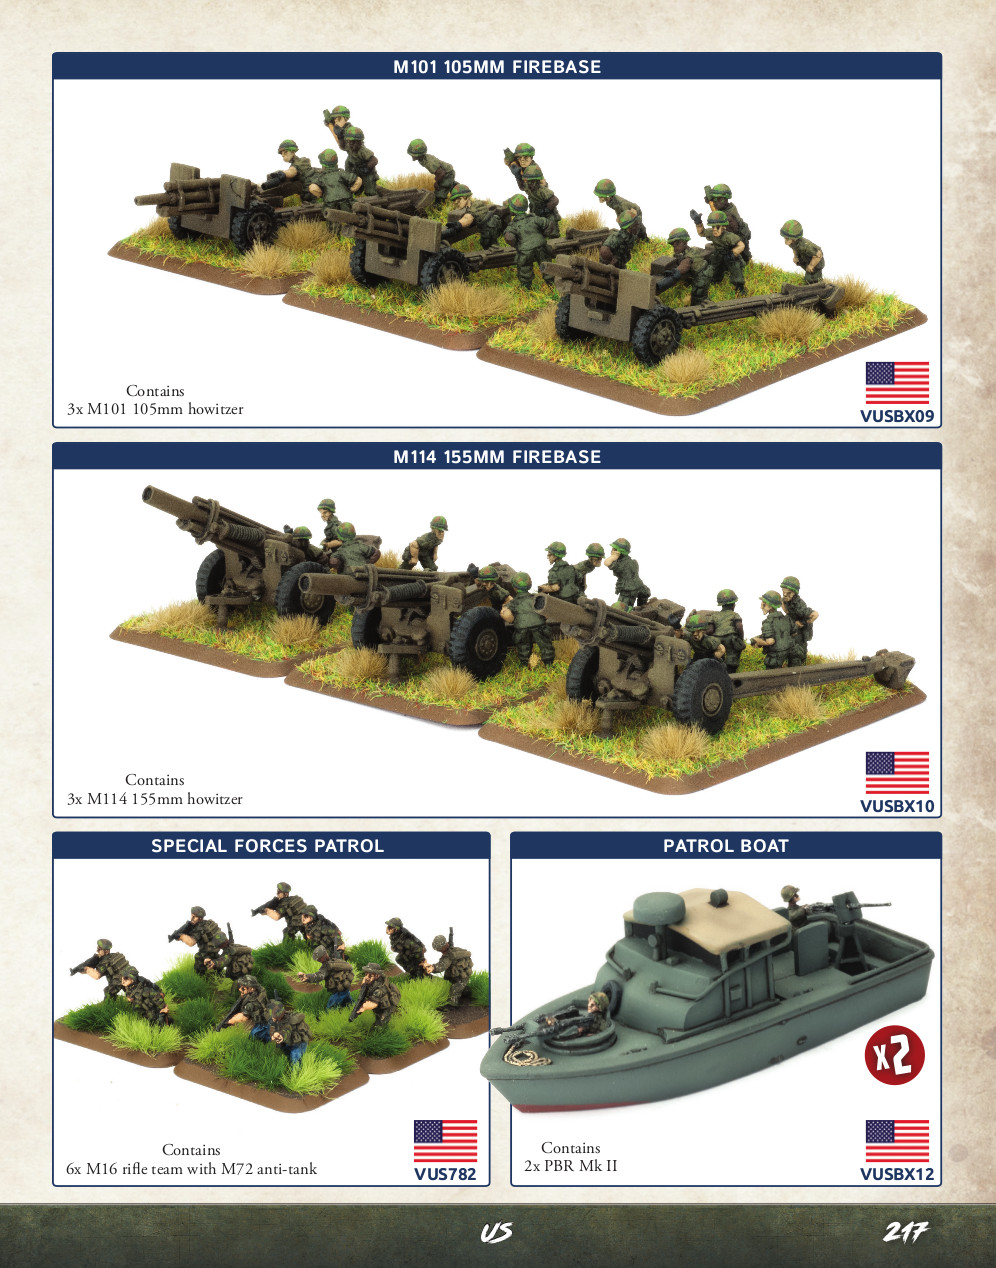 Miniatures Showcase from 'NAM Vietnam Rulebook by Osprey Games and Battlefront